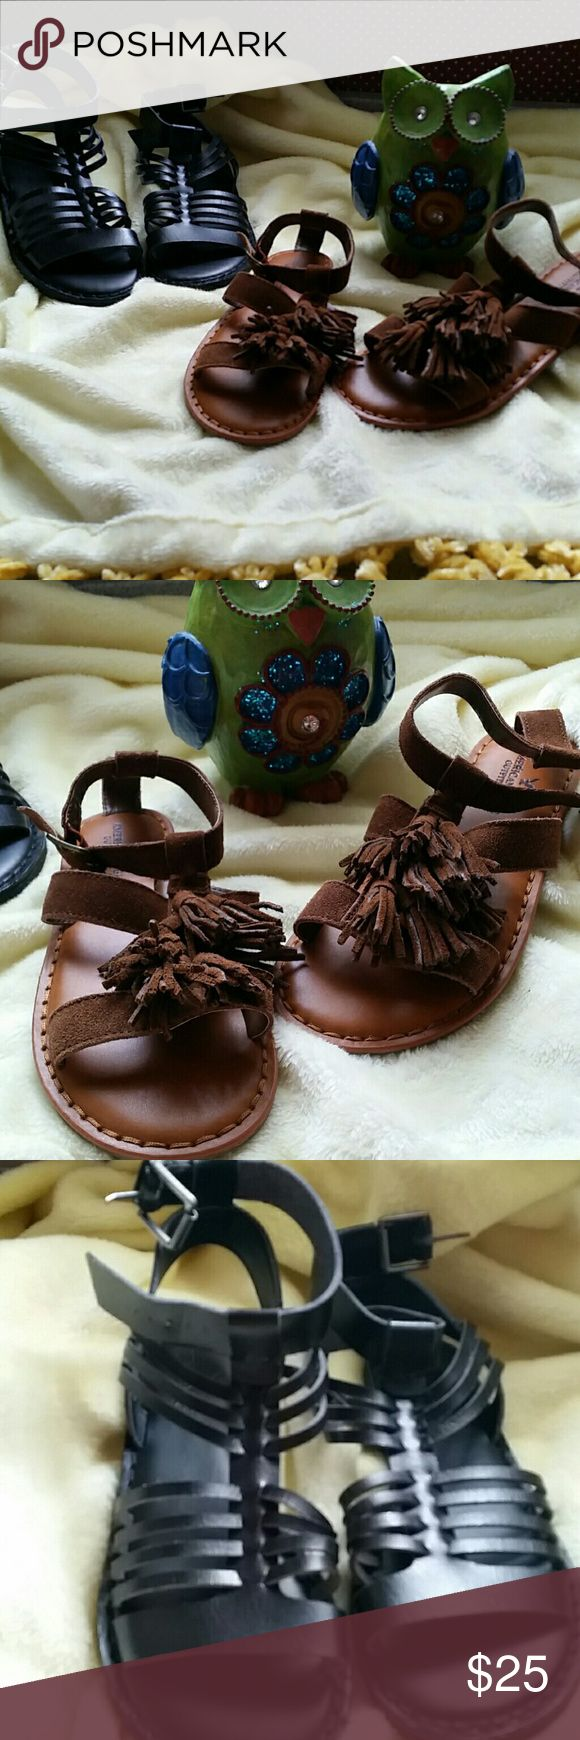 American Eagle Outfitters Sandals 2 for 25$  American Eagle Sandals Size 6...NWOT.  Brown Fringe and a black gladiator style...Sold as a set for 25.00 or best offer to move forward enjoy American Eagle Outfitters Shoes Sandals